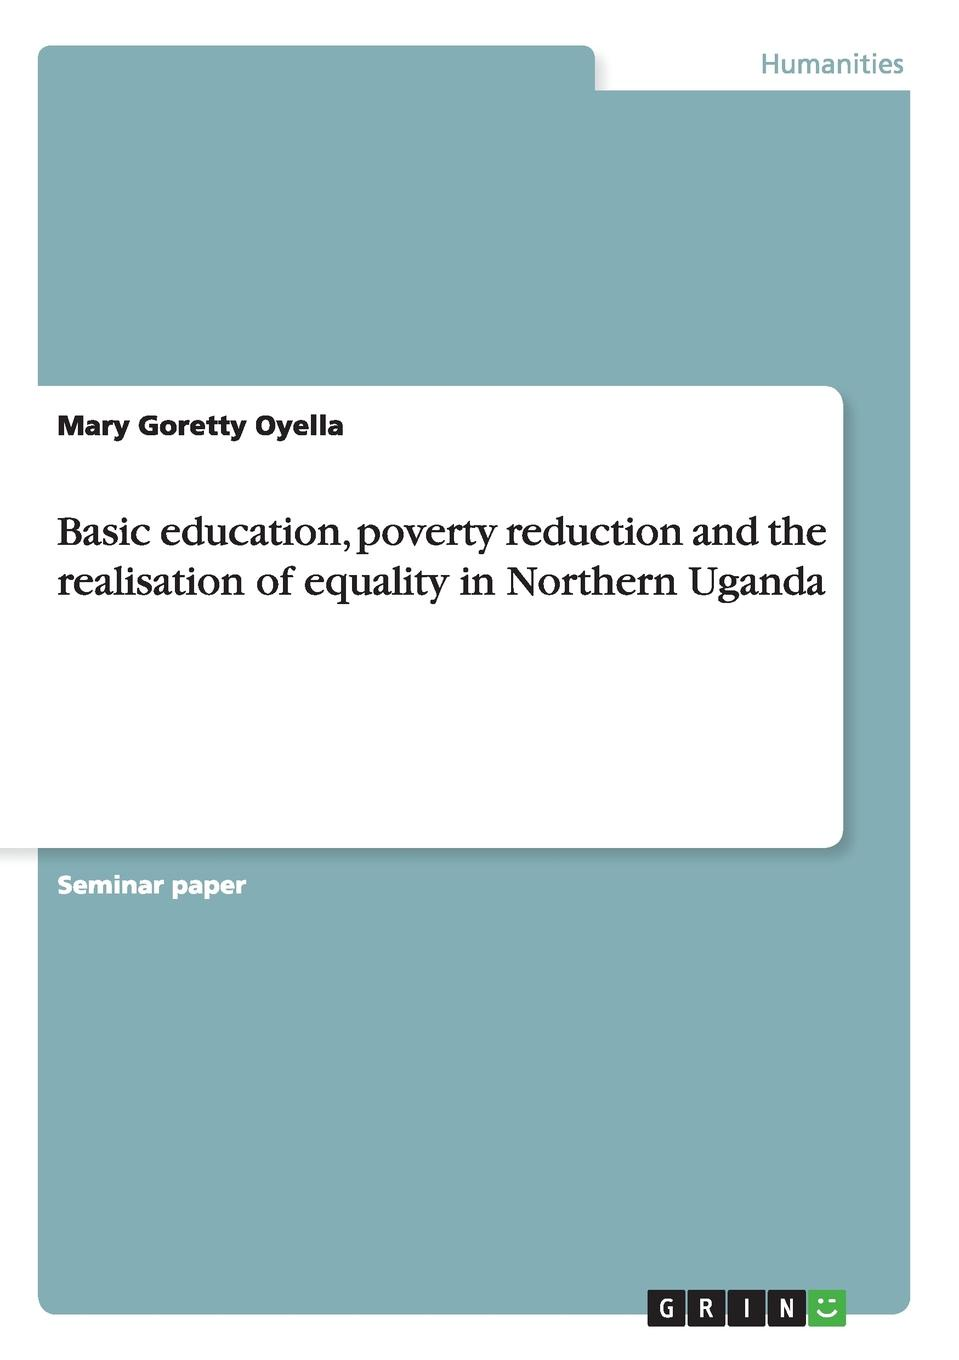 Mary Goretty Oyella Basic education, poverty reduction and the realisation of equality in Northern Uganda musa argungu muhammad pastoralists girls education in africa a study of emusoi center in northern tanzania